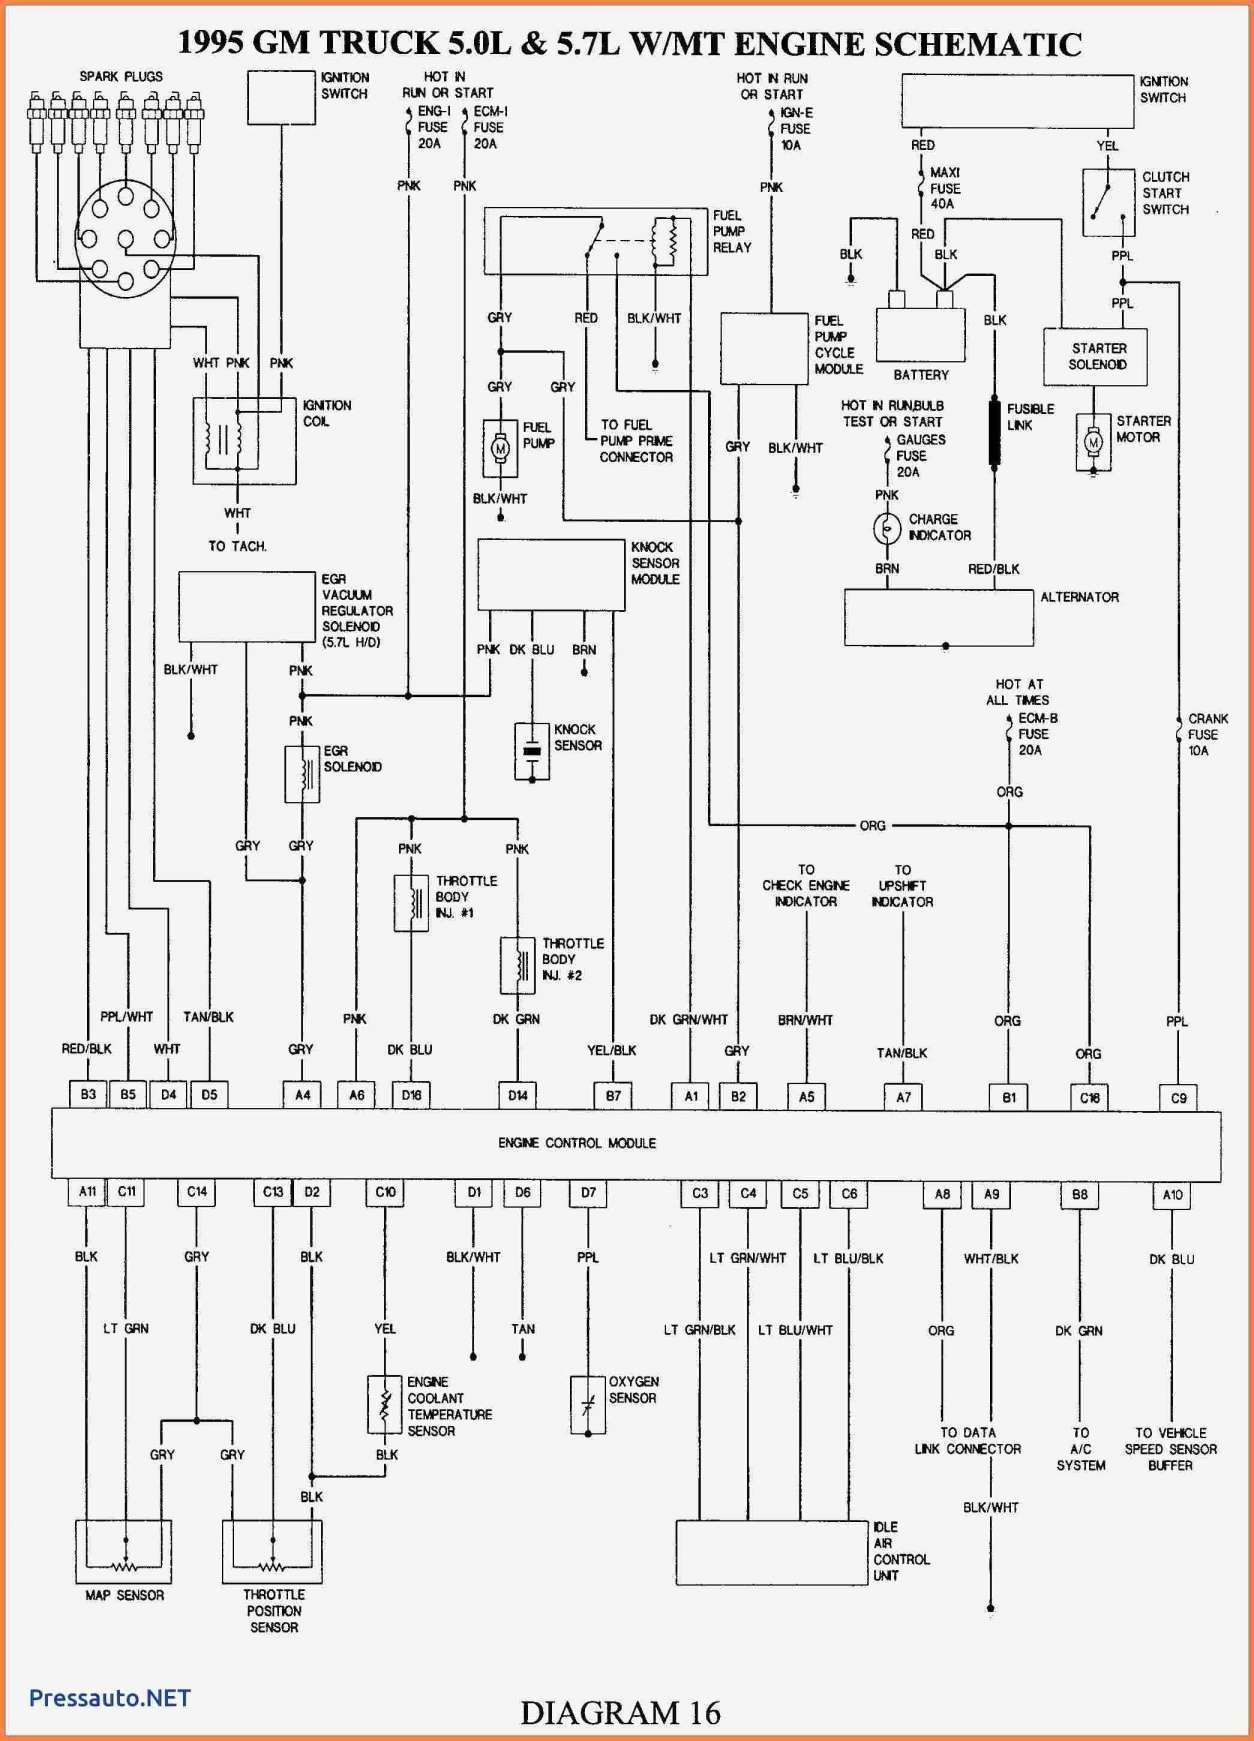 Wiring Diagram Starting Circuit 2003 Chevy 1500 Wiring Diagram Owner Owner Bowlingronta It